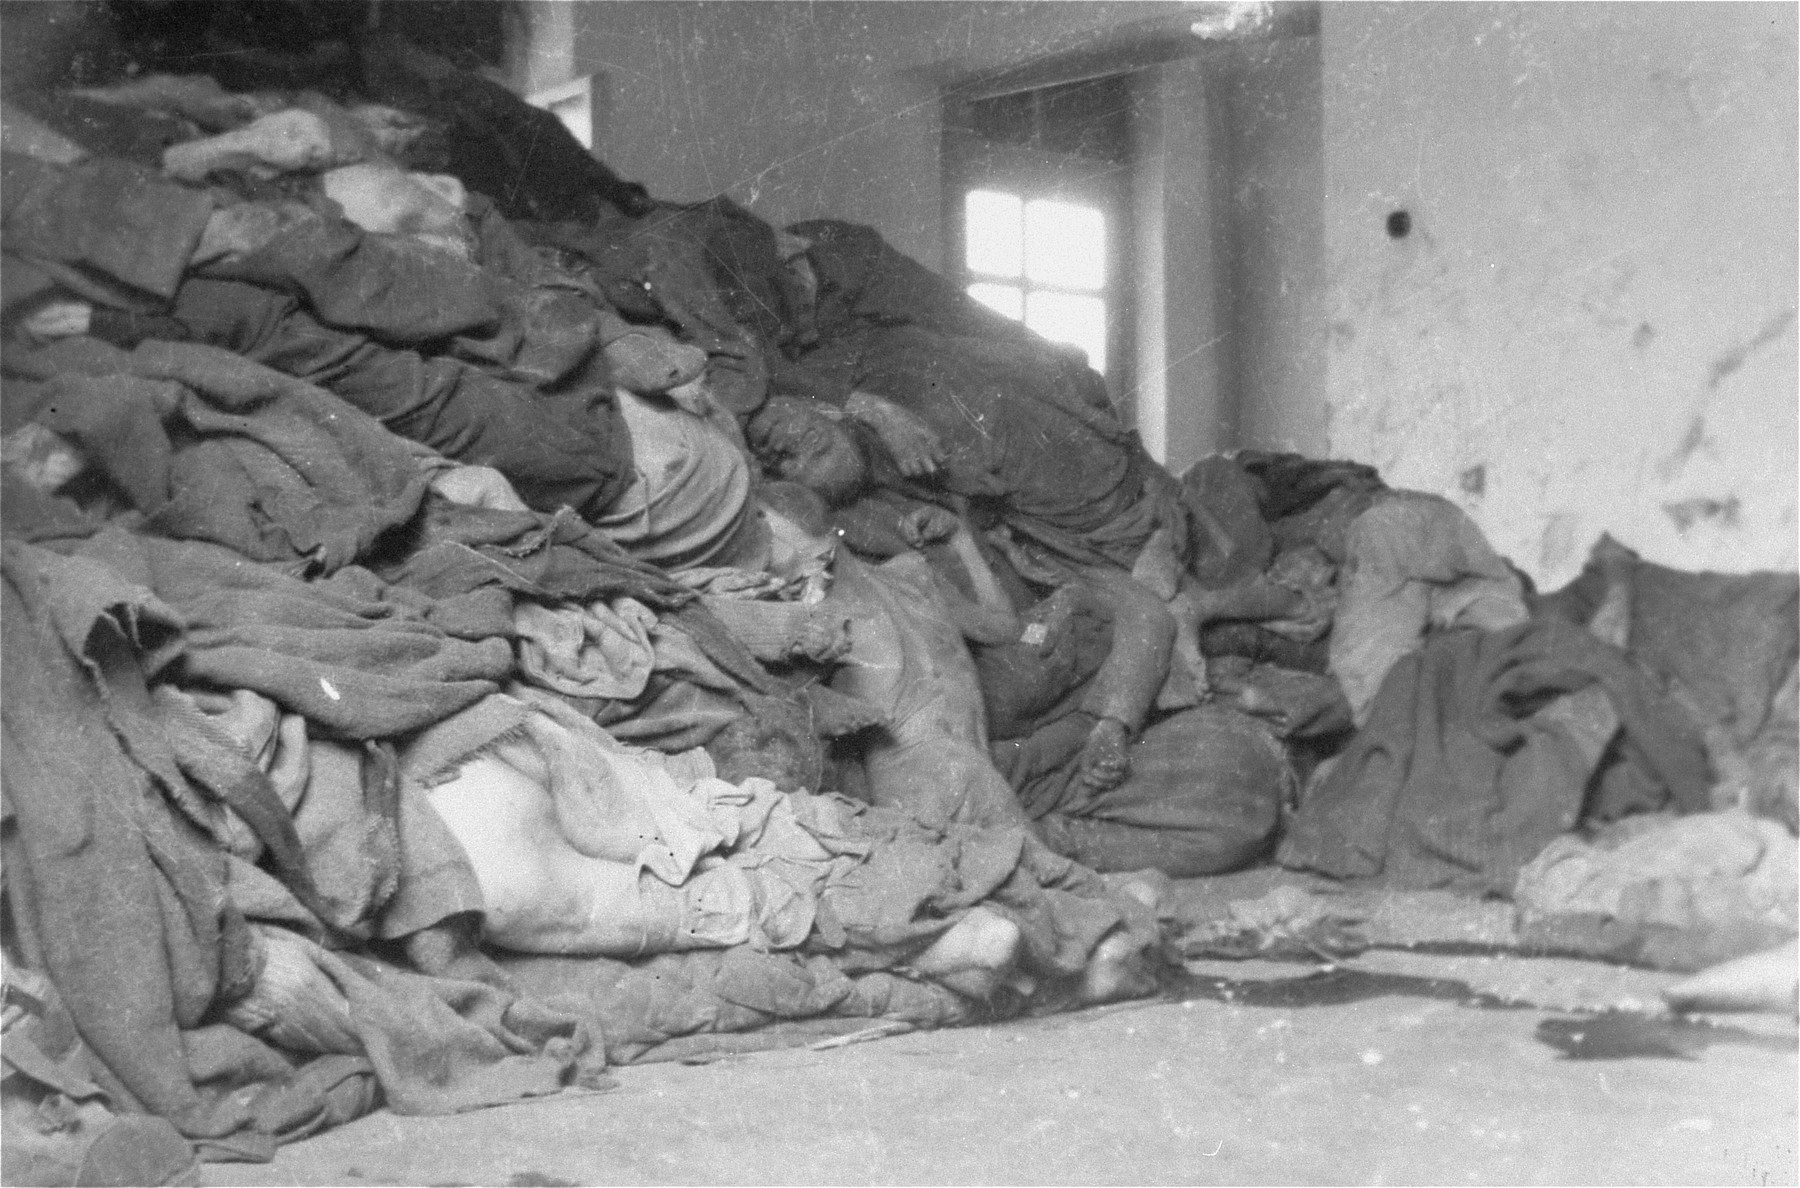 Corpses piled in the crematorium mortuary.  These rooms became so full of bodies that the SS staff and survivors began piling corpses behind the crematorium, where they were found by U.S. troops during the liberation of the camp.